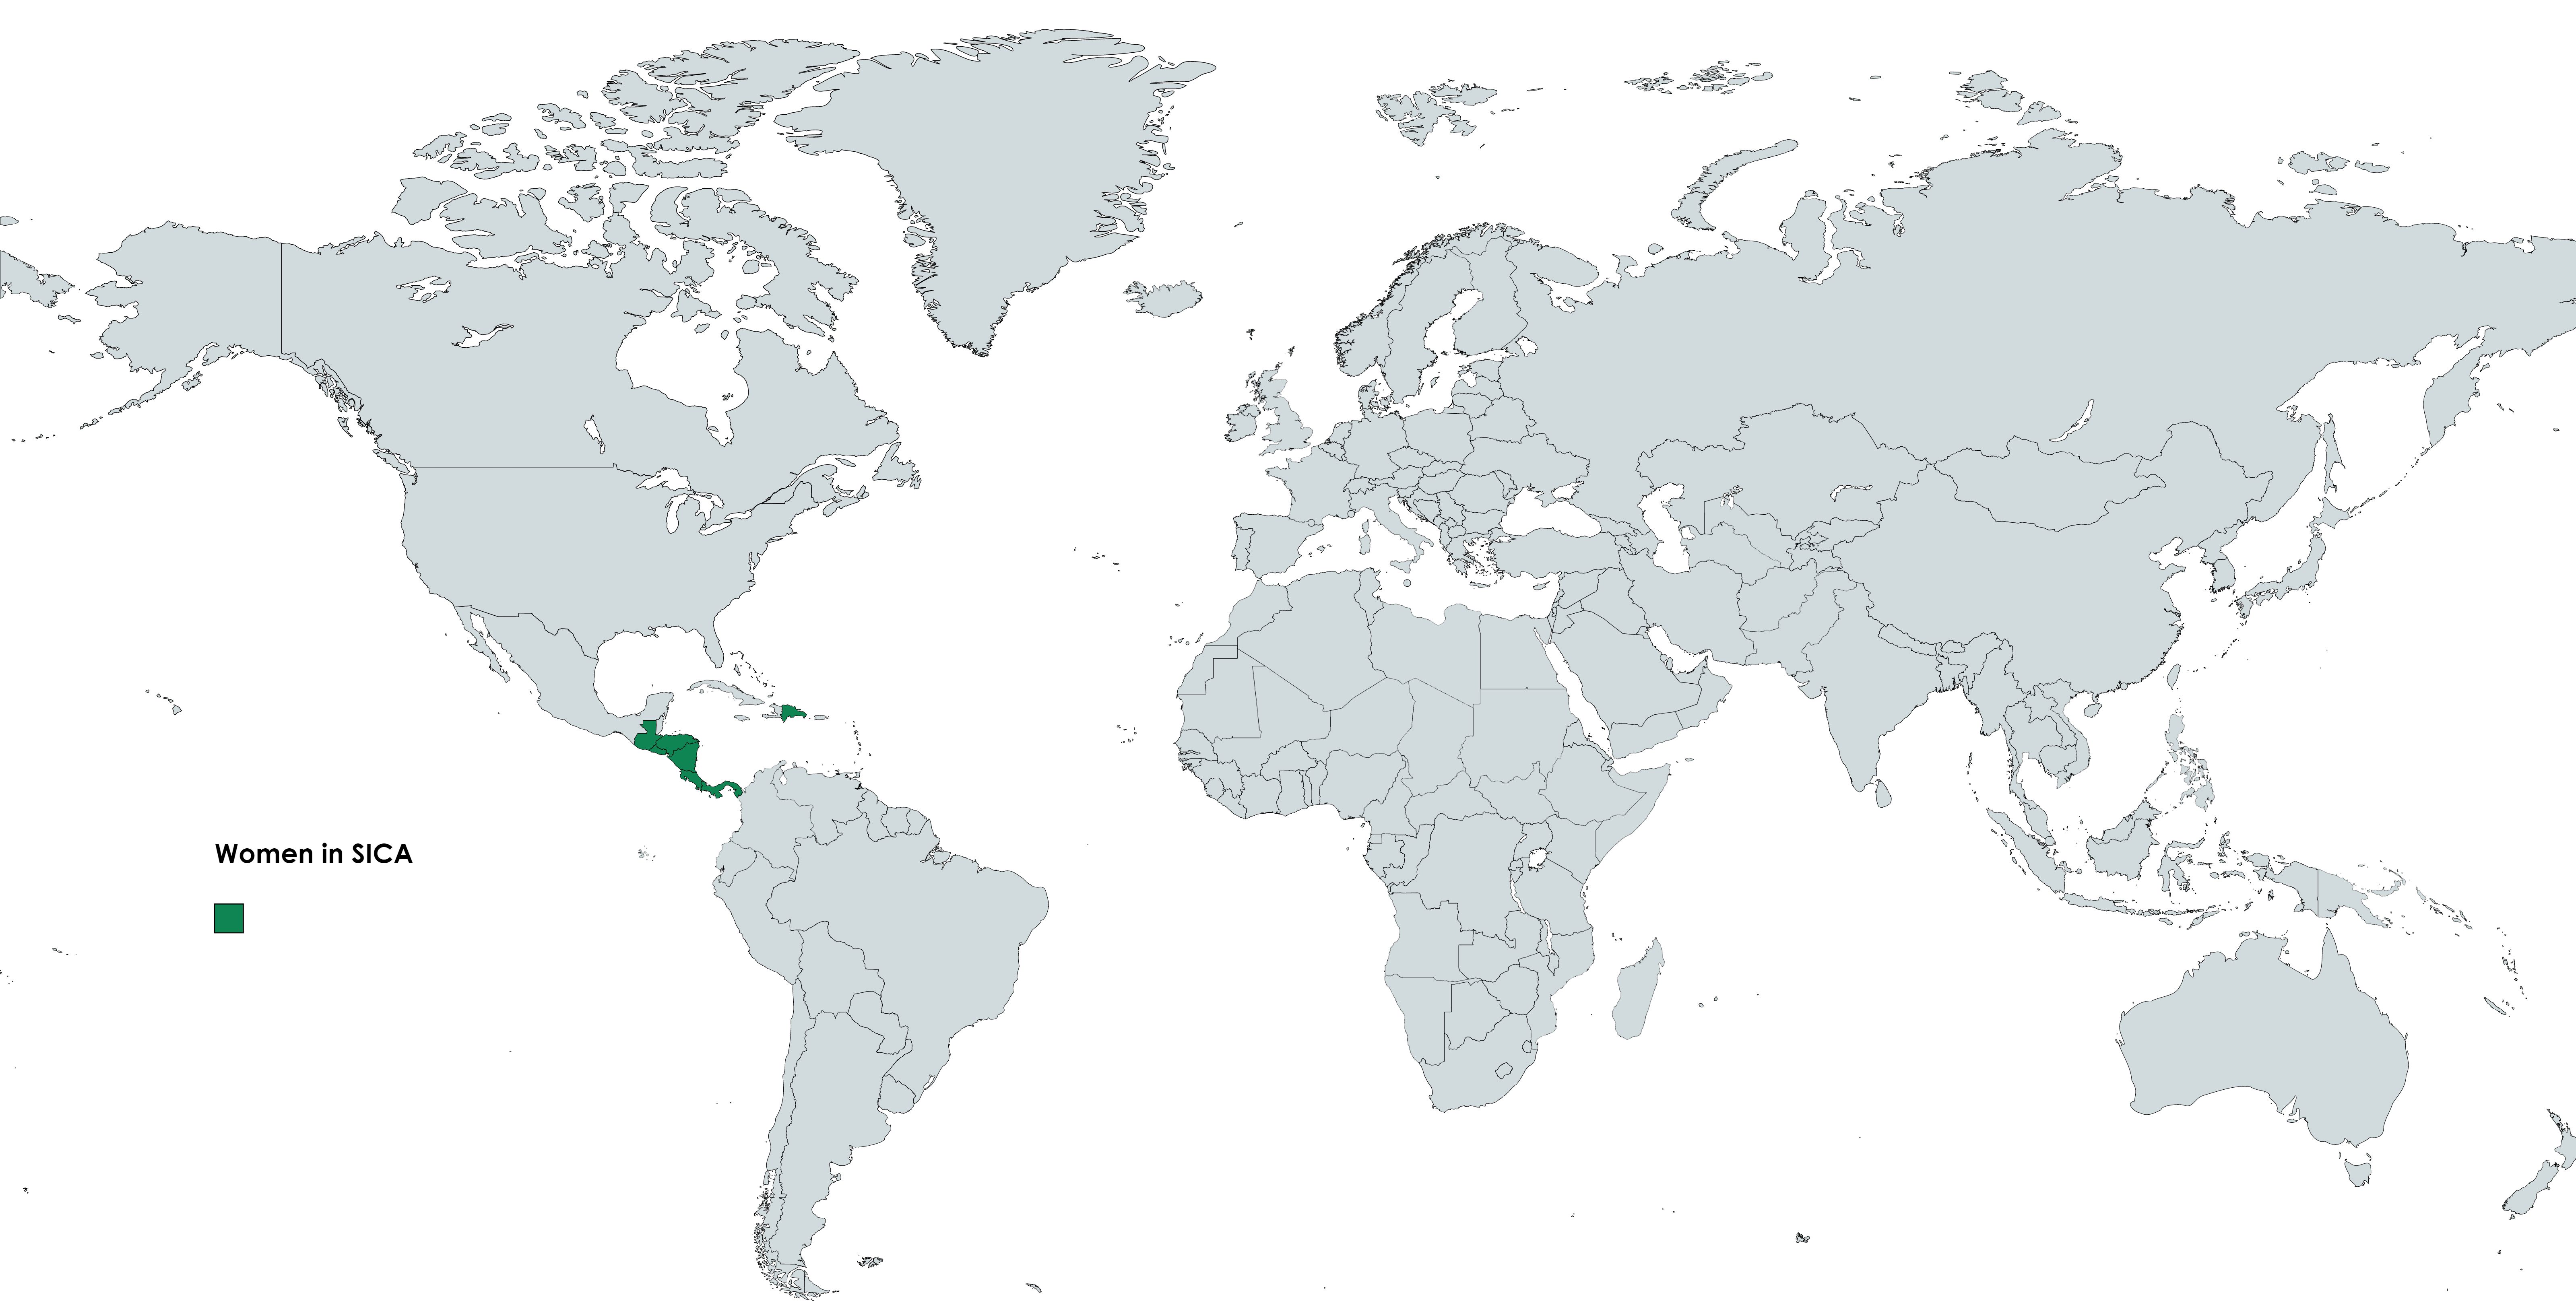 Map of the world with mentor countries highlighted